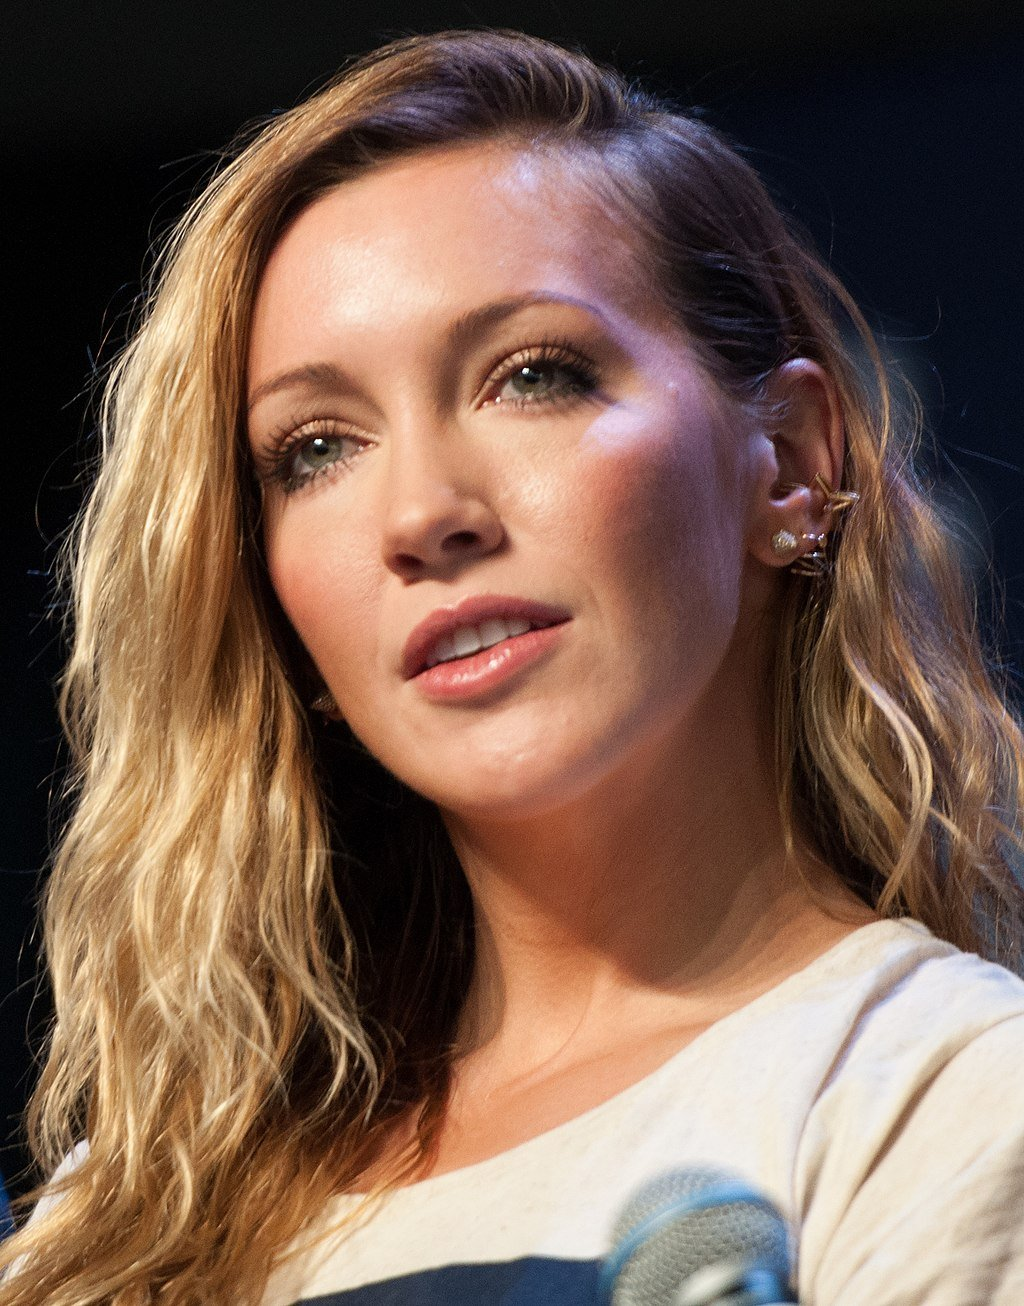 Image Source: Wikimedia Commons/Public Domain/Katie Cassidy at the Heroes and Villains convention 2016